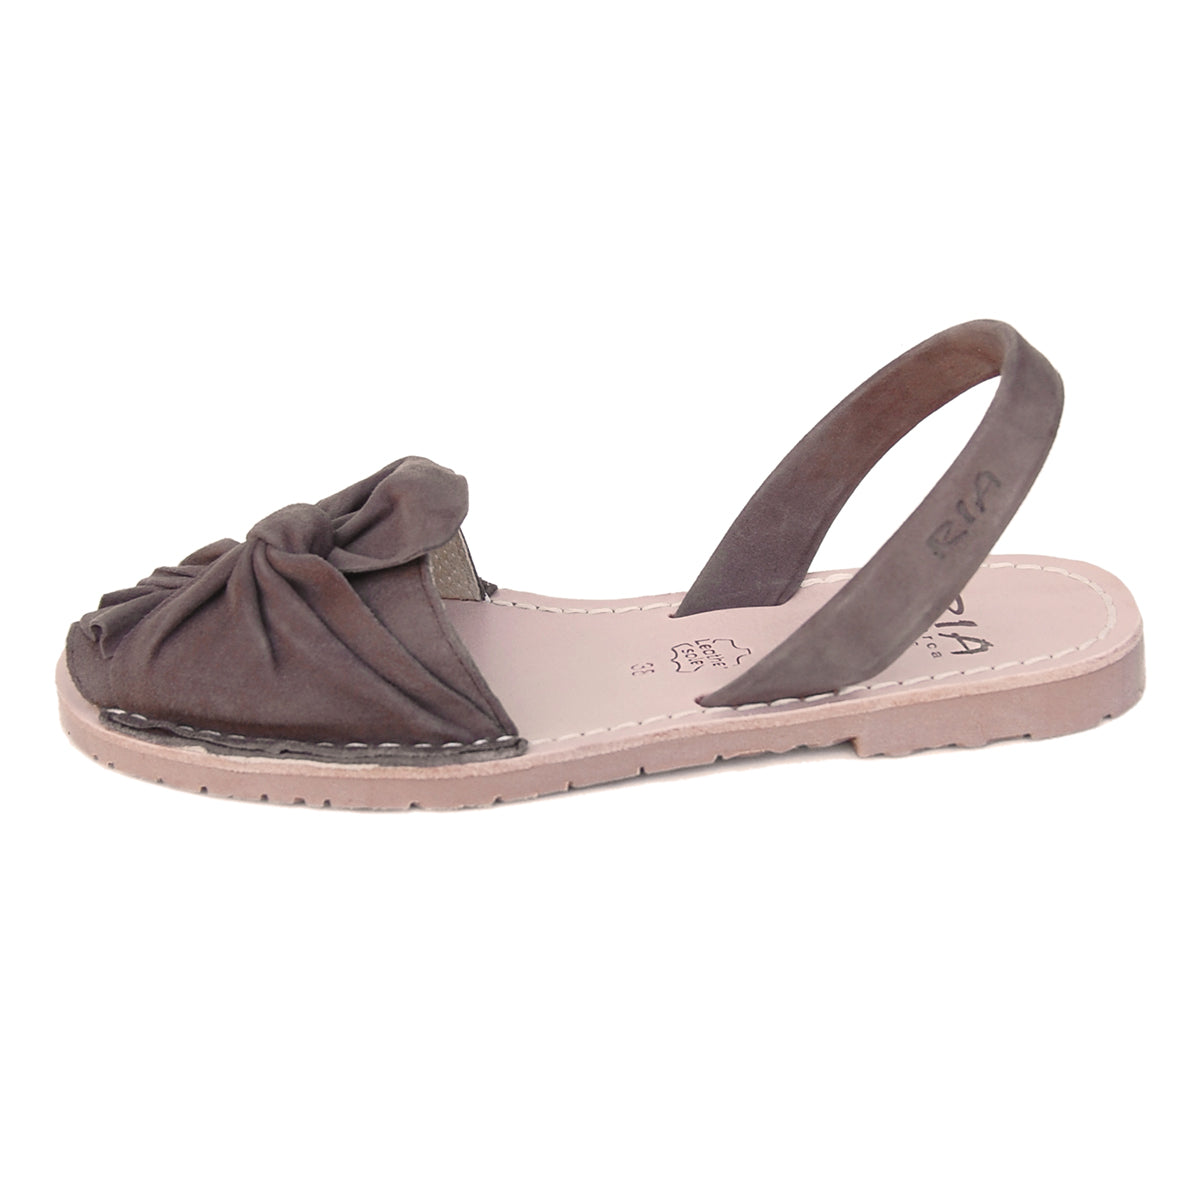 Sierra Avarcas Menorcan Sandals in Mud